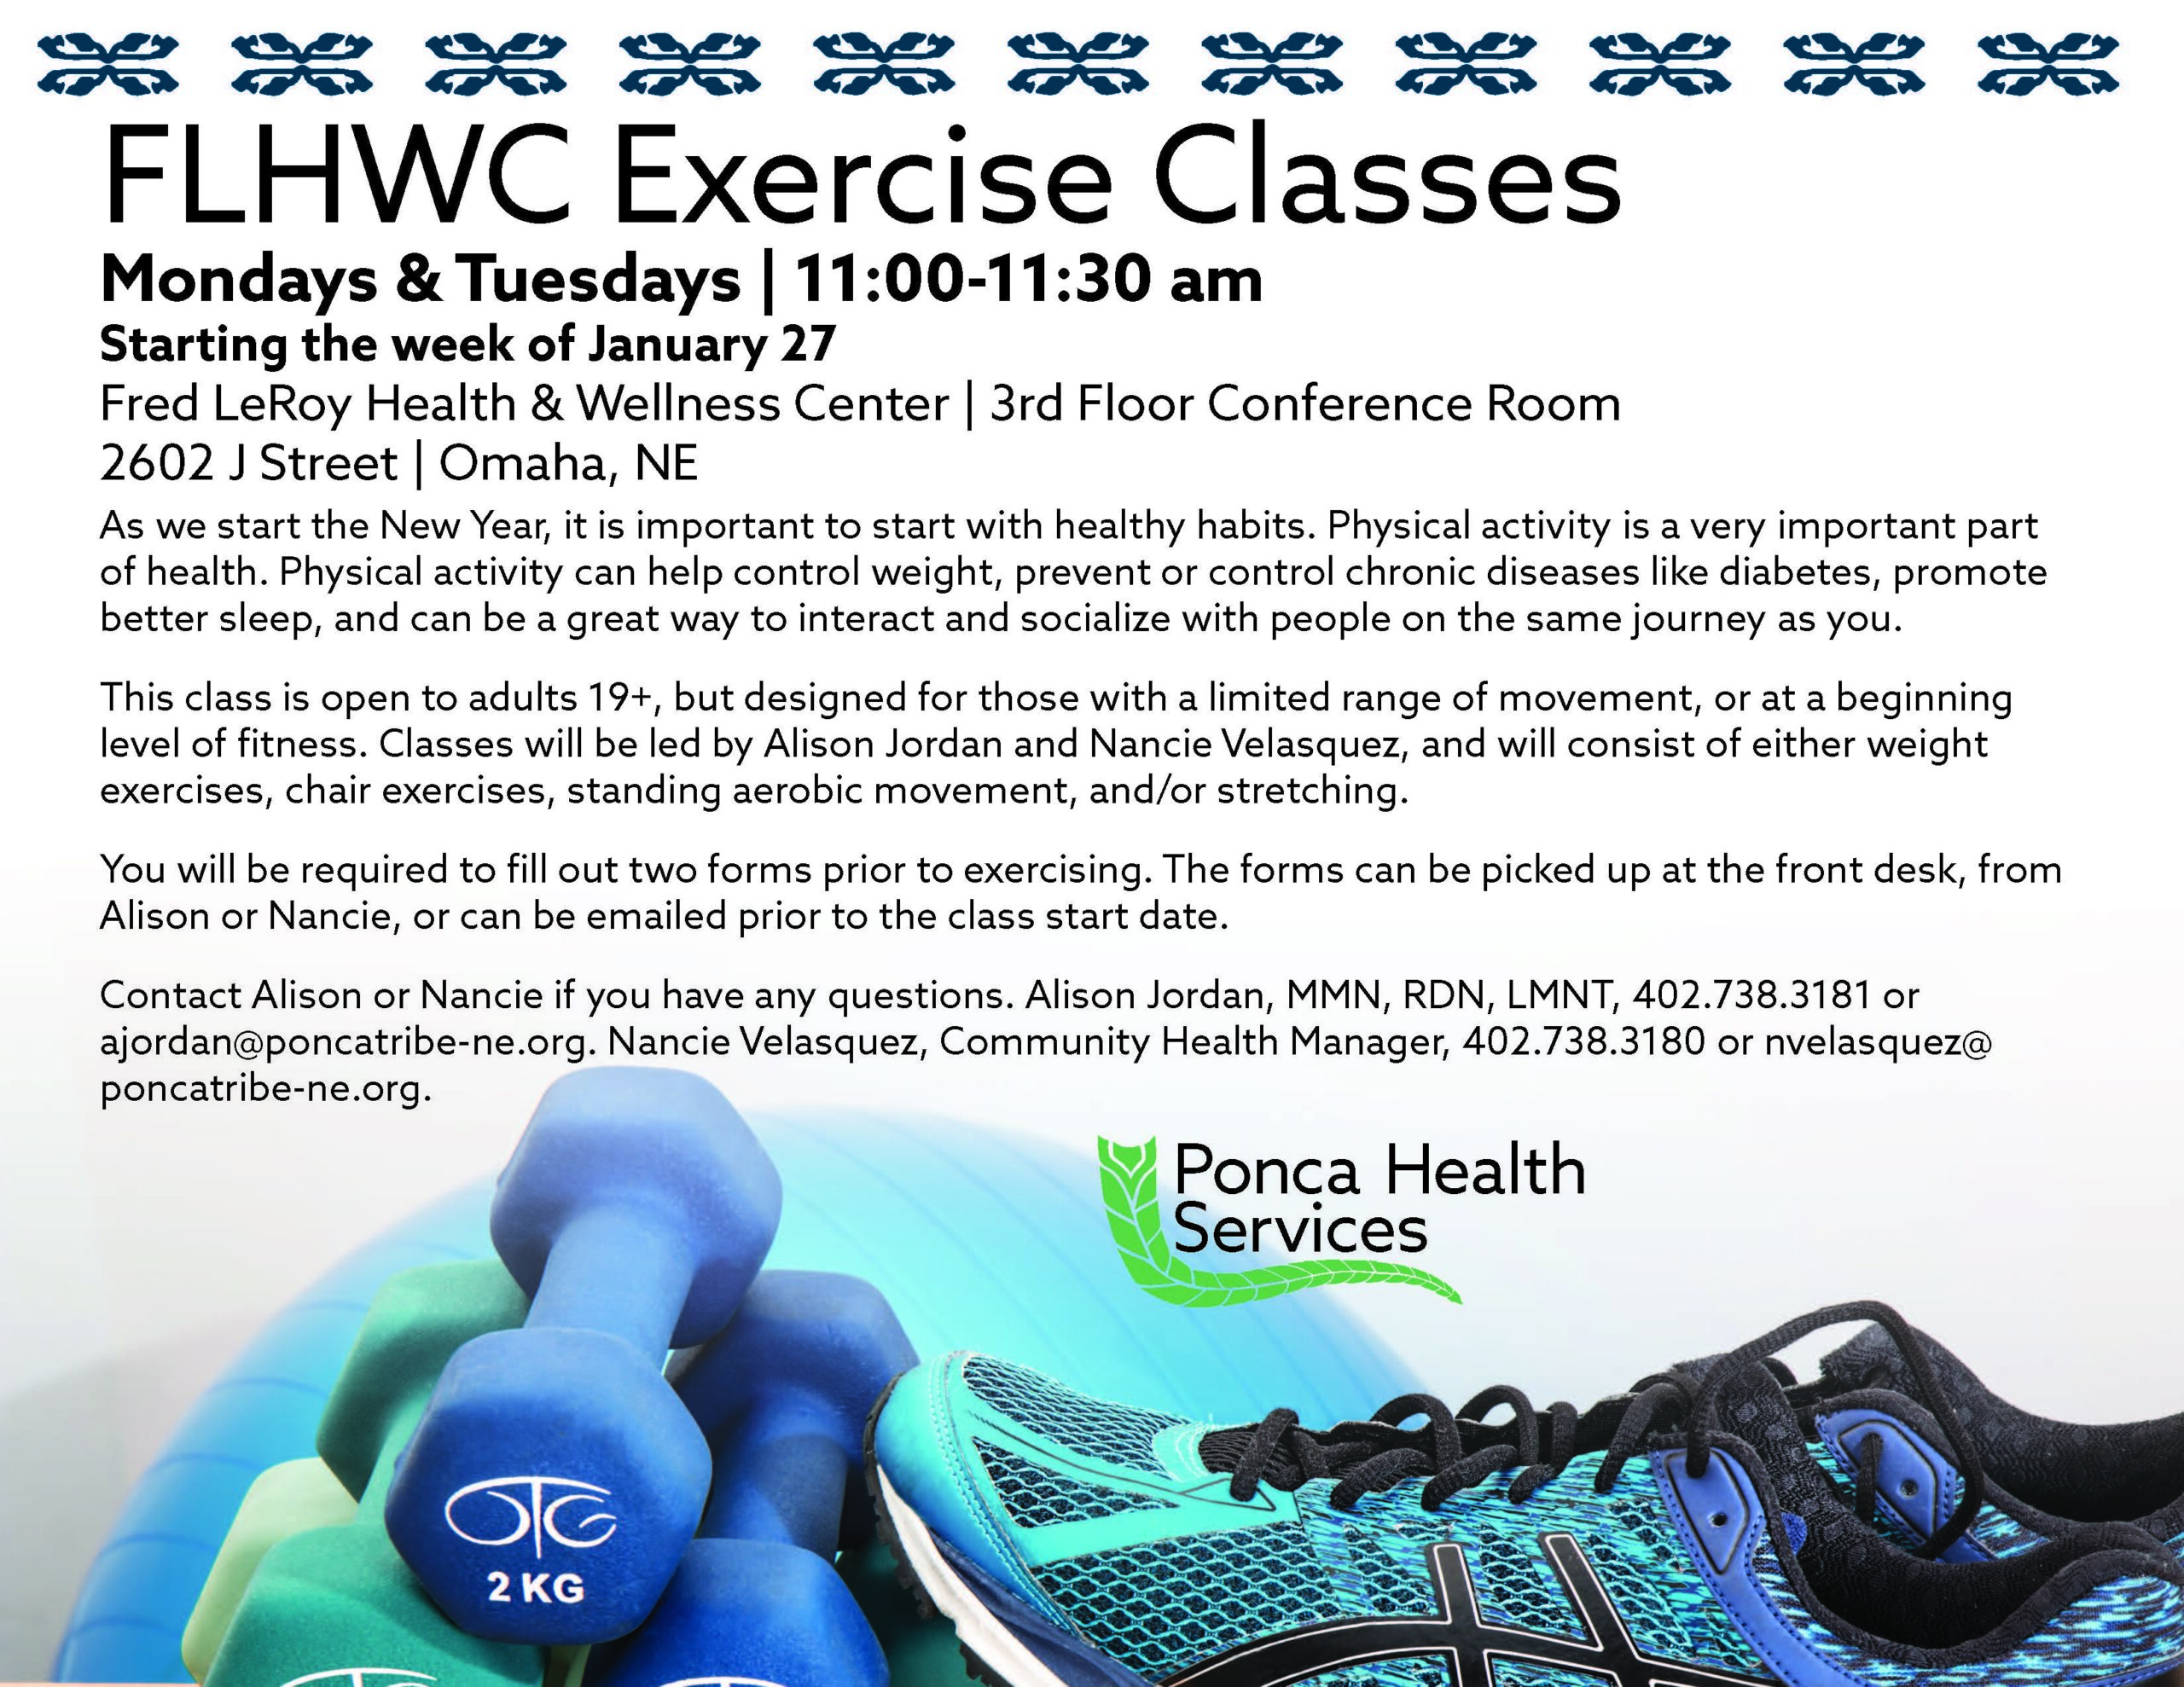 Exercise Classes at Fred LeRoy Health and Wellness Center